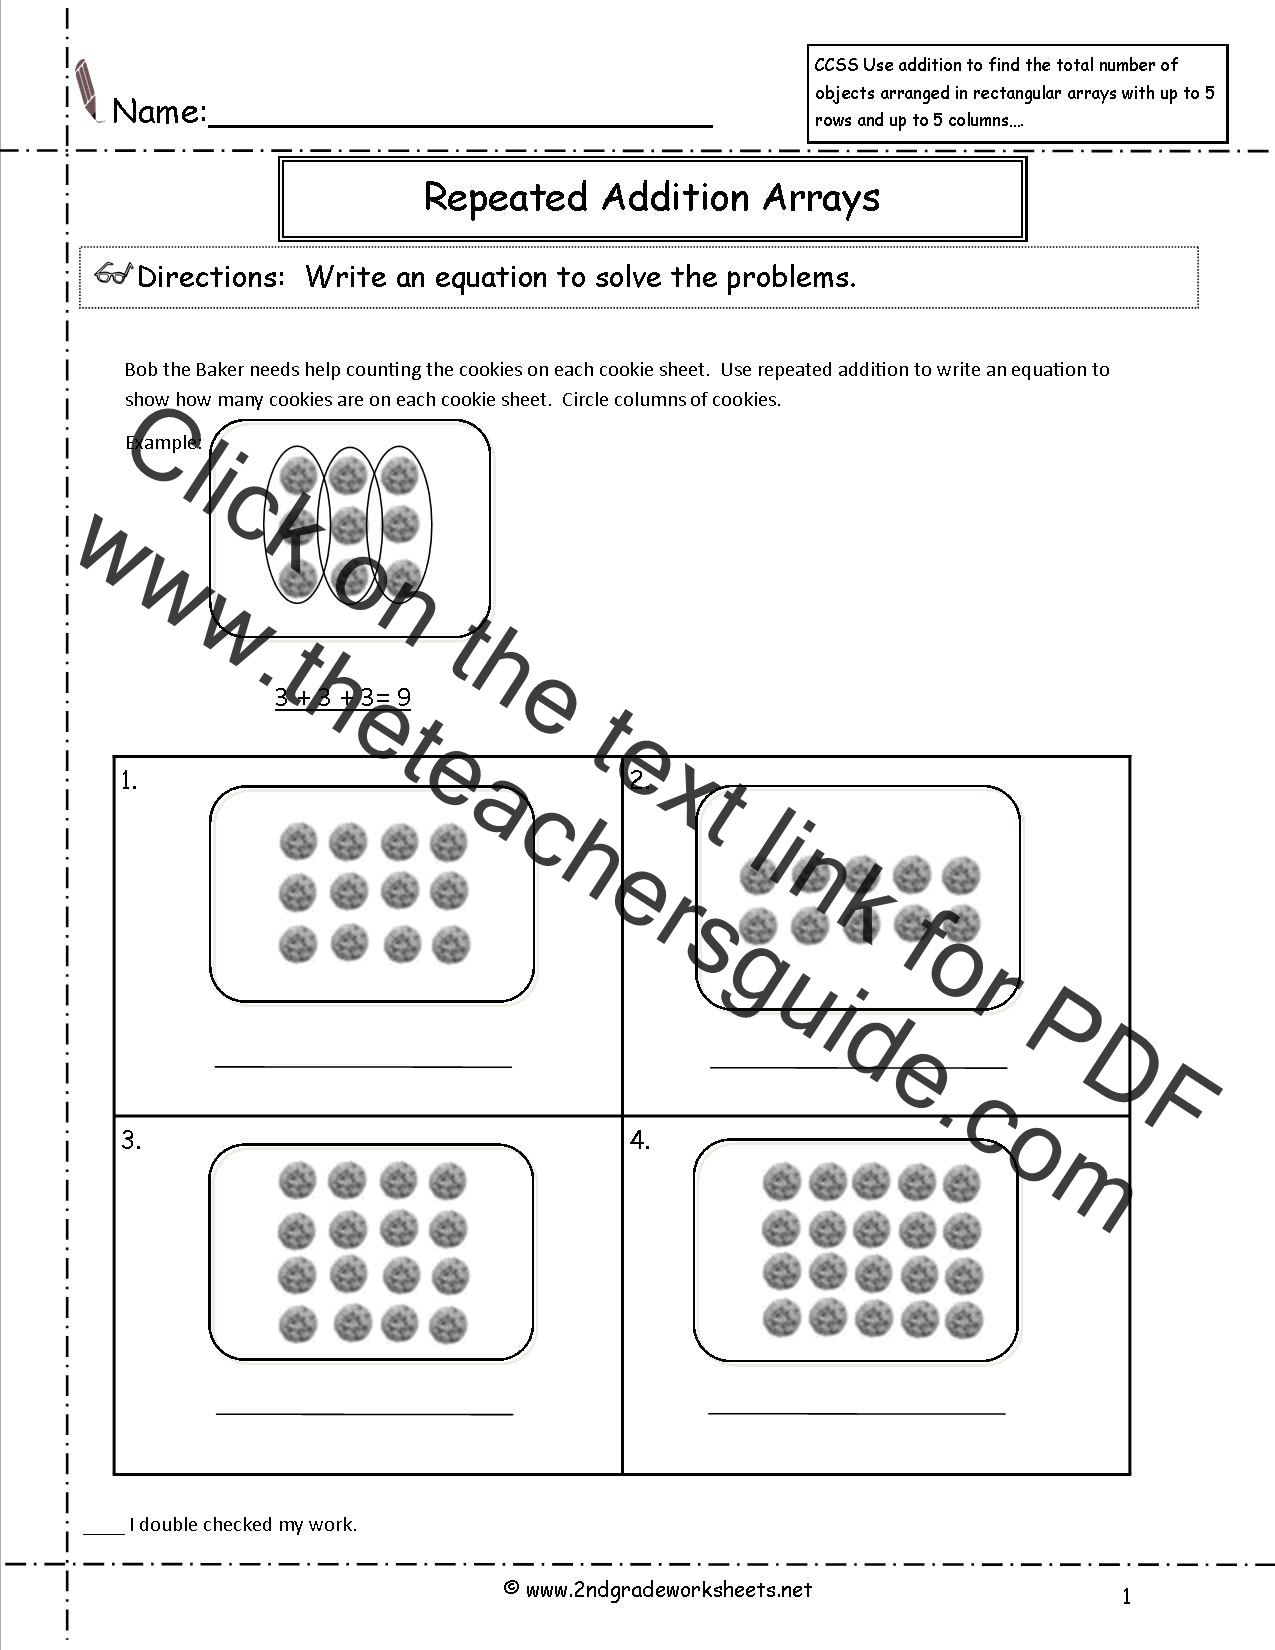 Worksheets Free Common Core Math Worksheets 2nd grade math common core state standards worksheets ccss 2 oa 4 worksheets